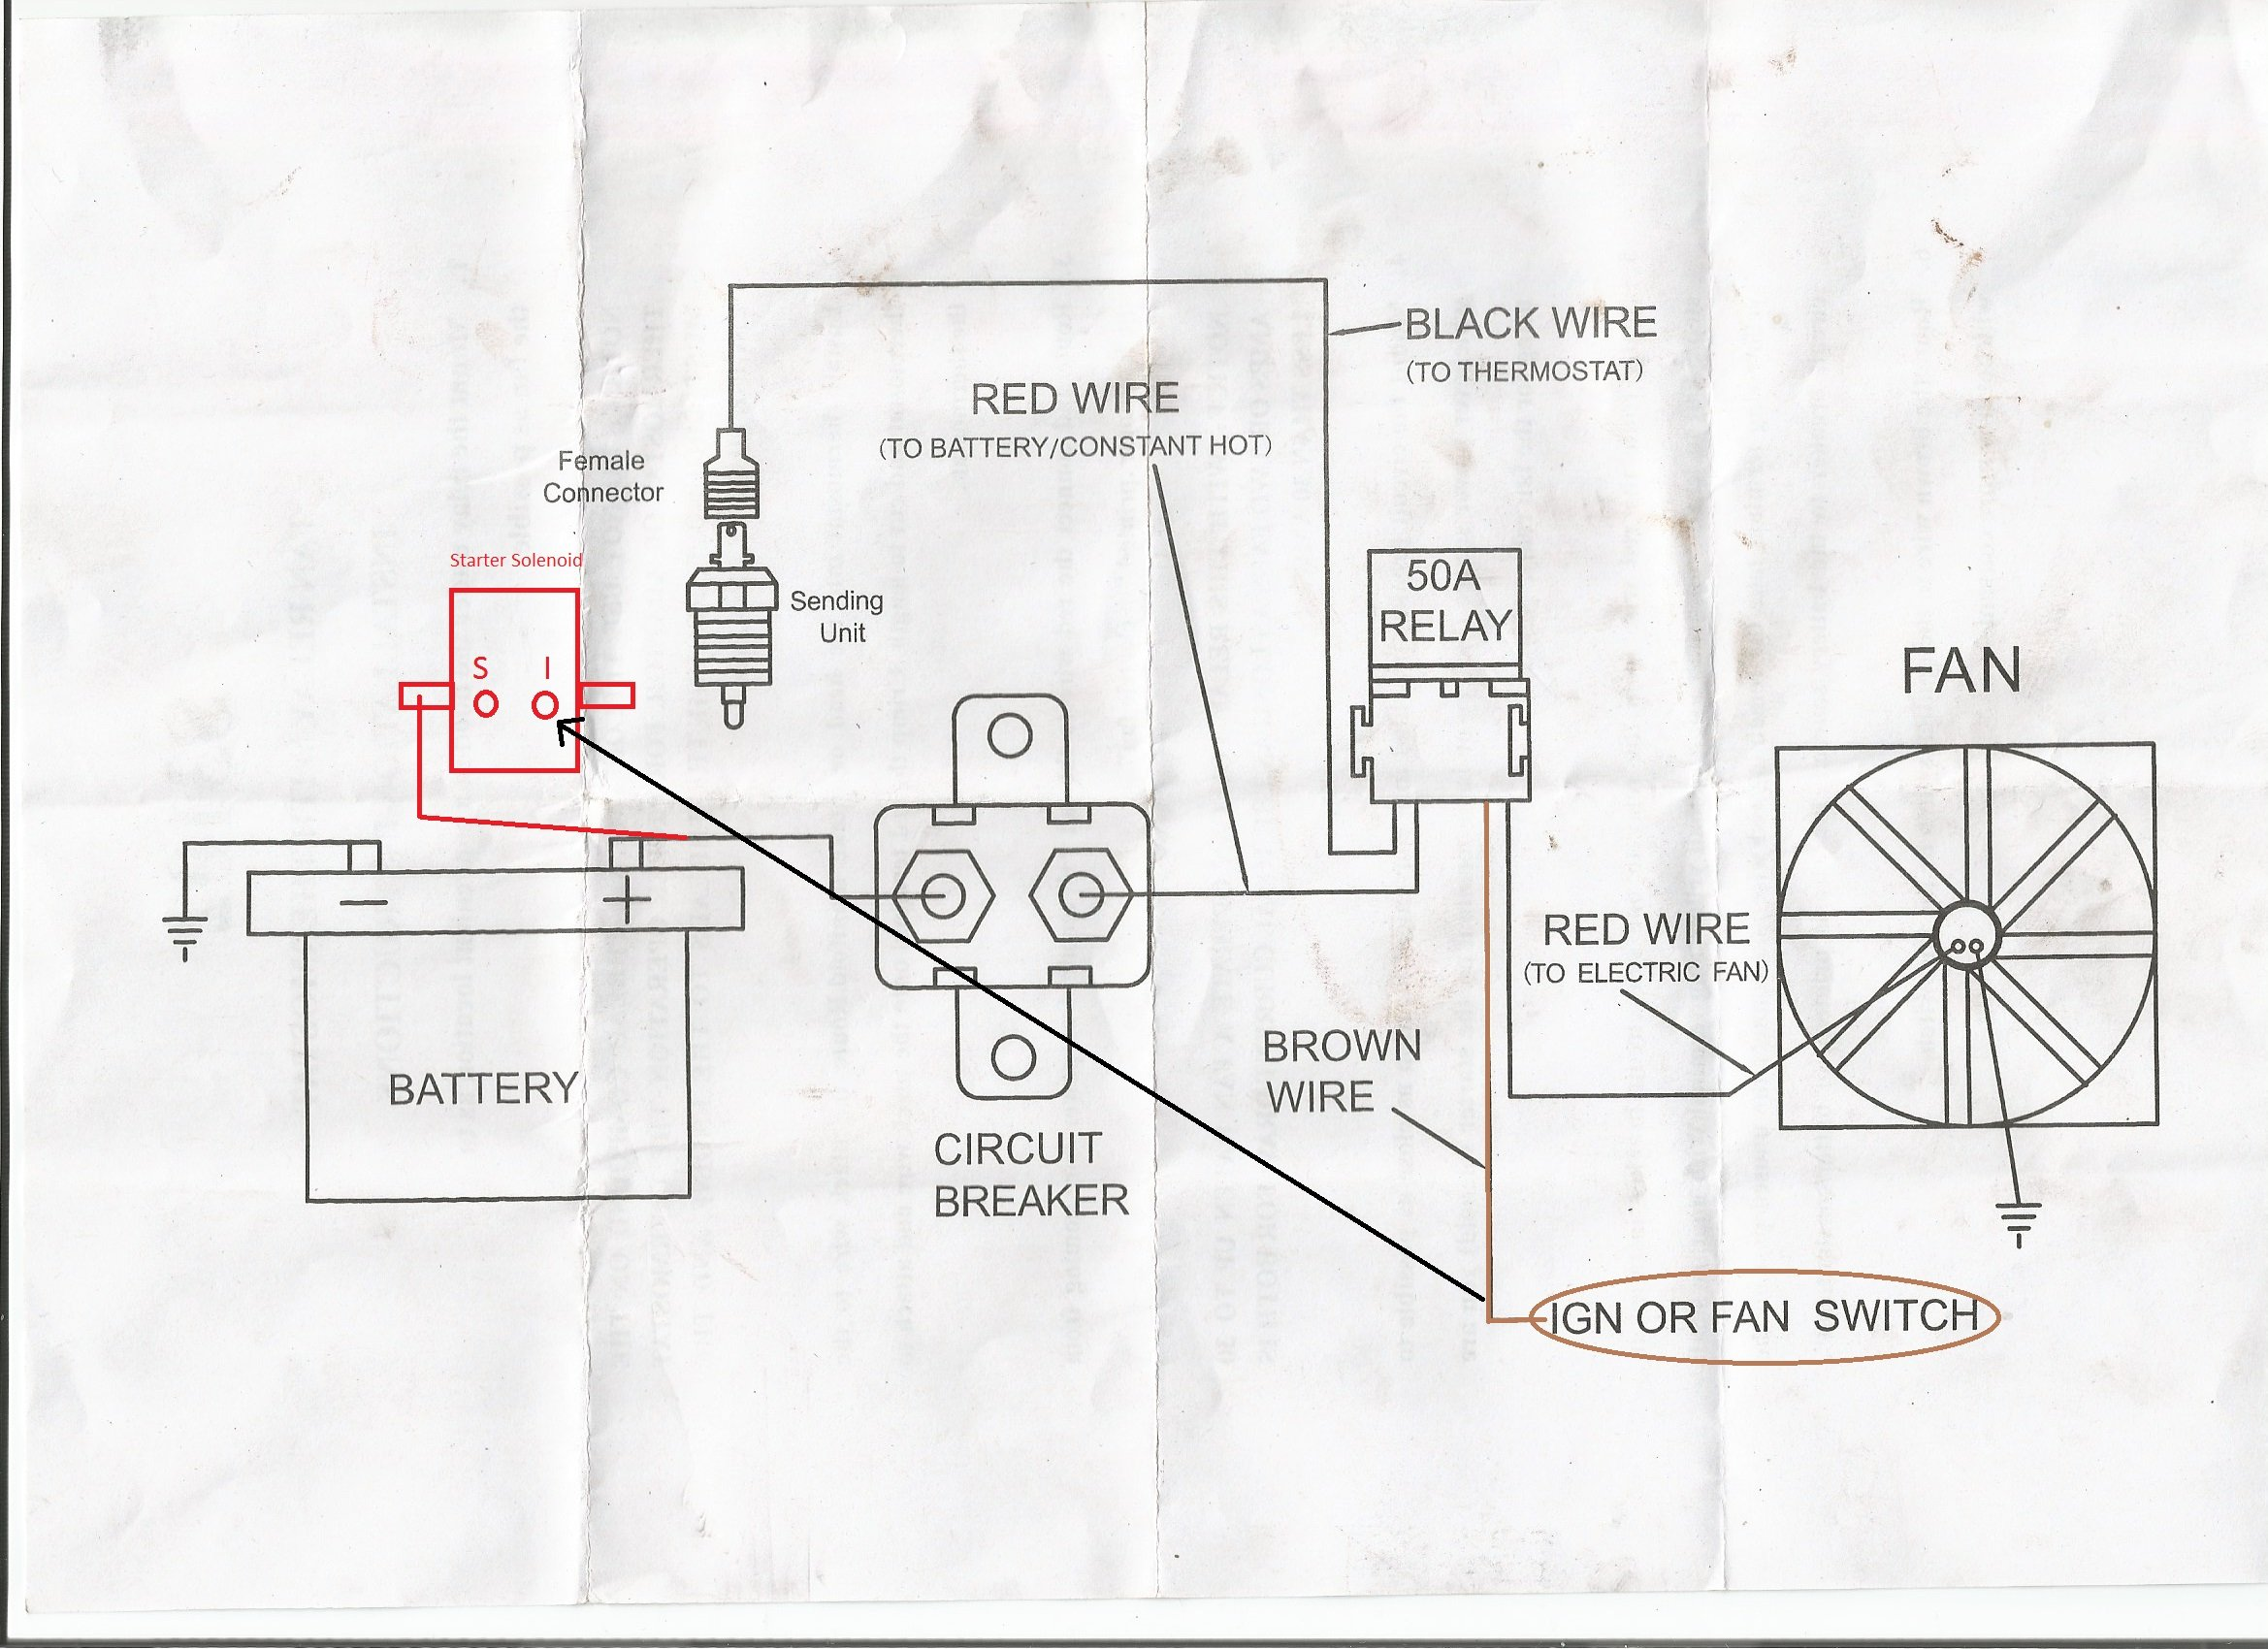 Relay Kit Wiring Diagram Library H13 High Low Click Image For Larger Version Name Views 6091 Size